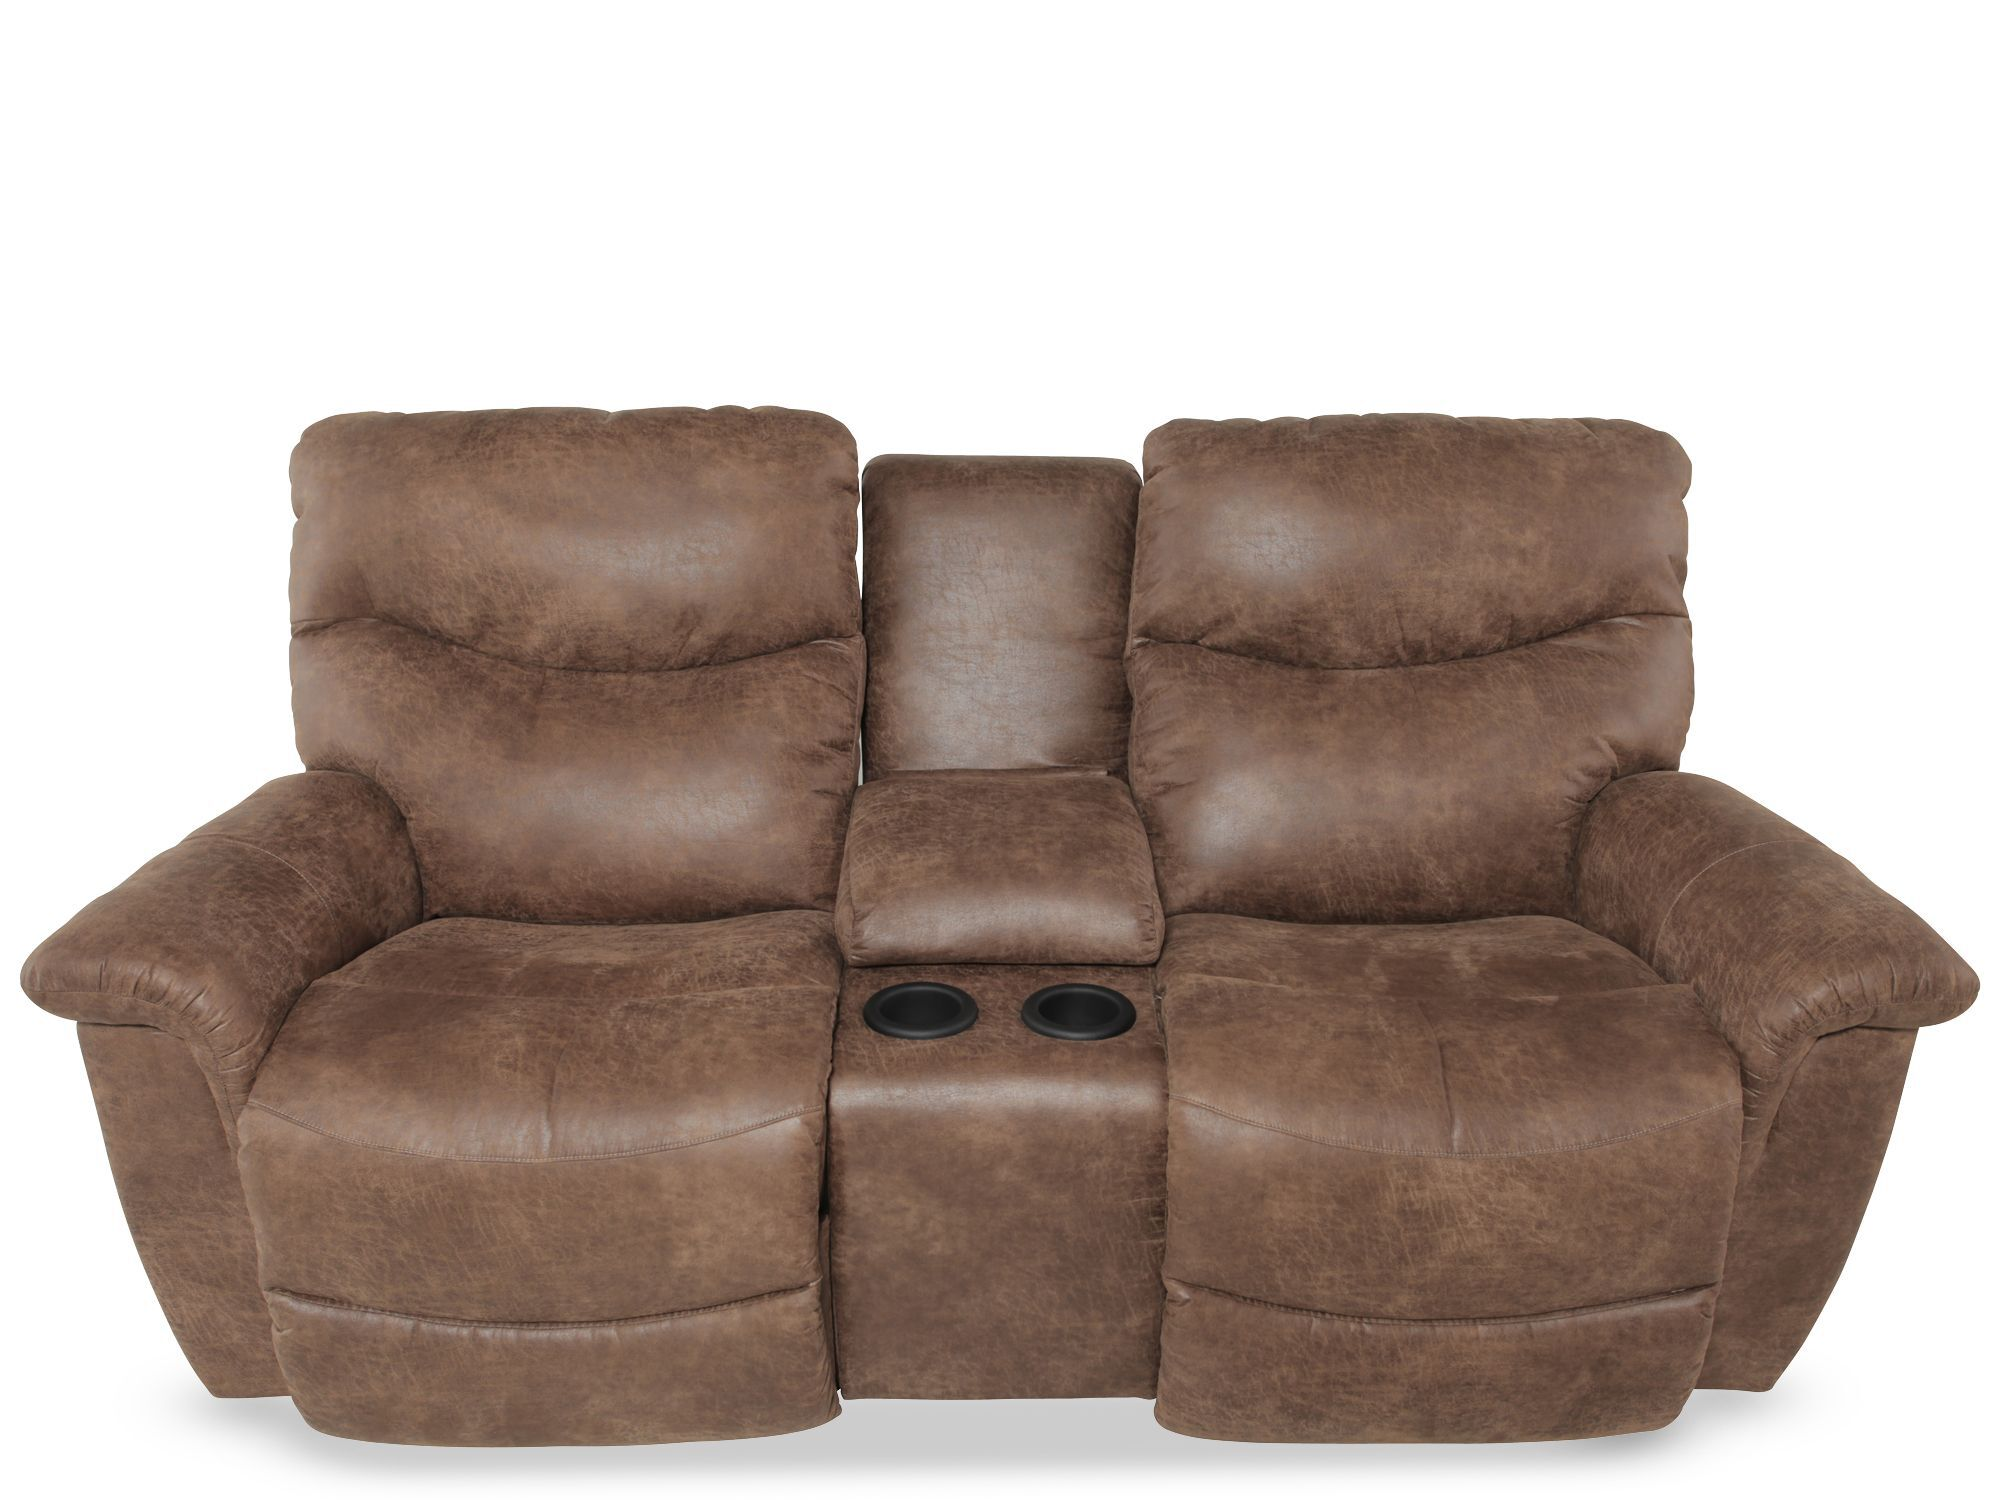 La-Z-Boy James Silt Performance Leather Double Recliner  sc 1 st  Mathis Brothers & Double Recliner - LA-Z-Boy | Mathis Brothers islam-shia.org